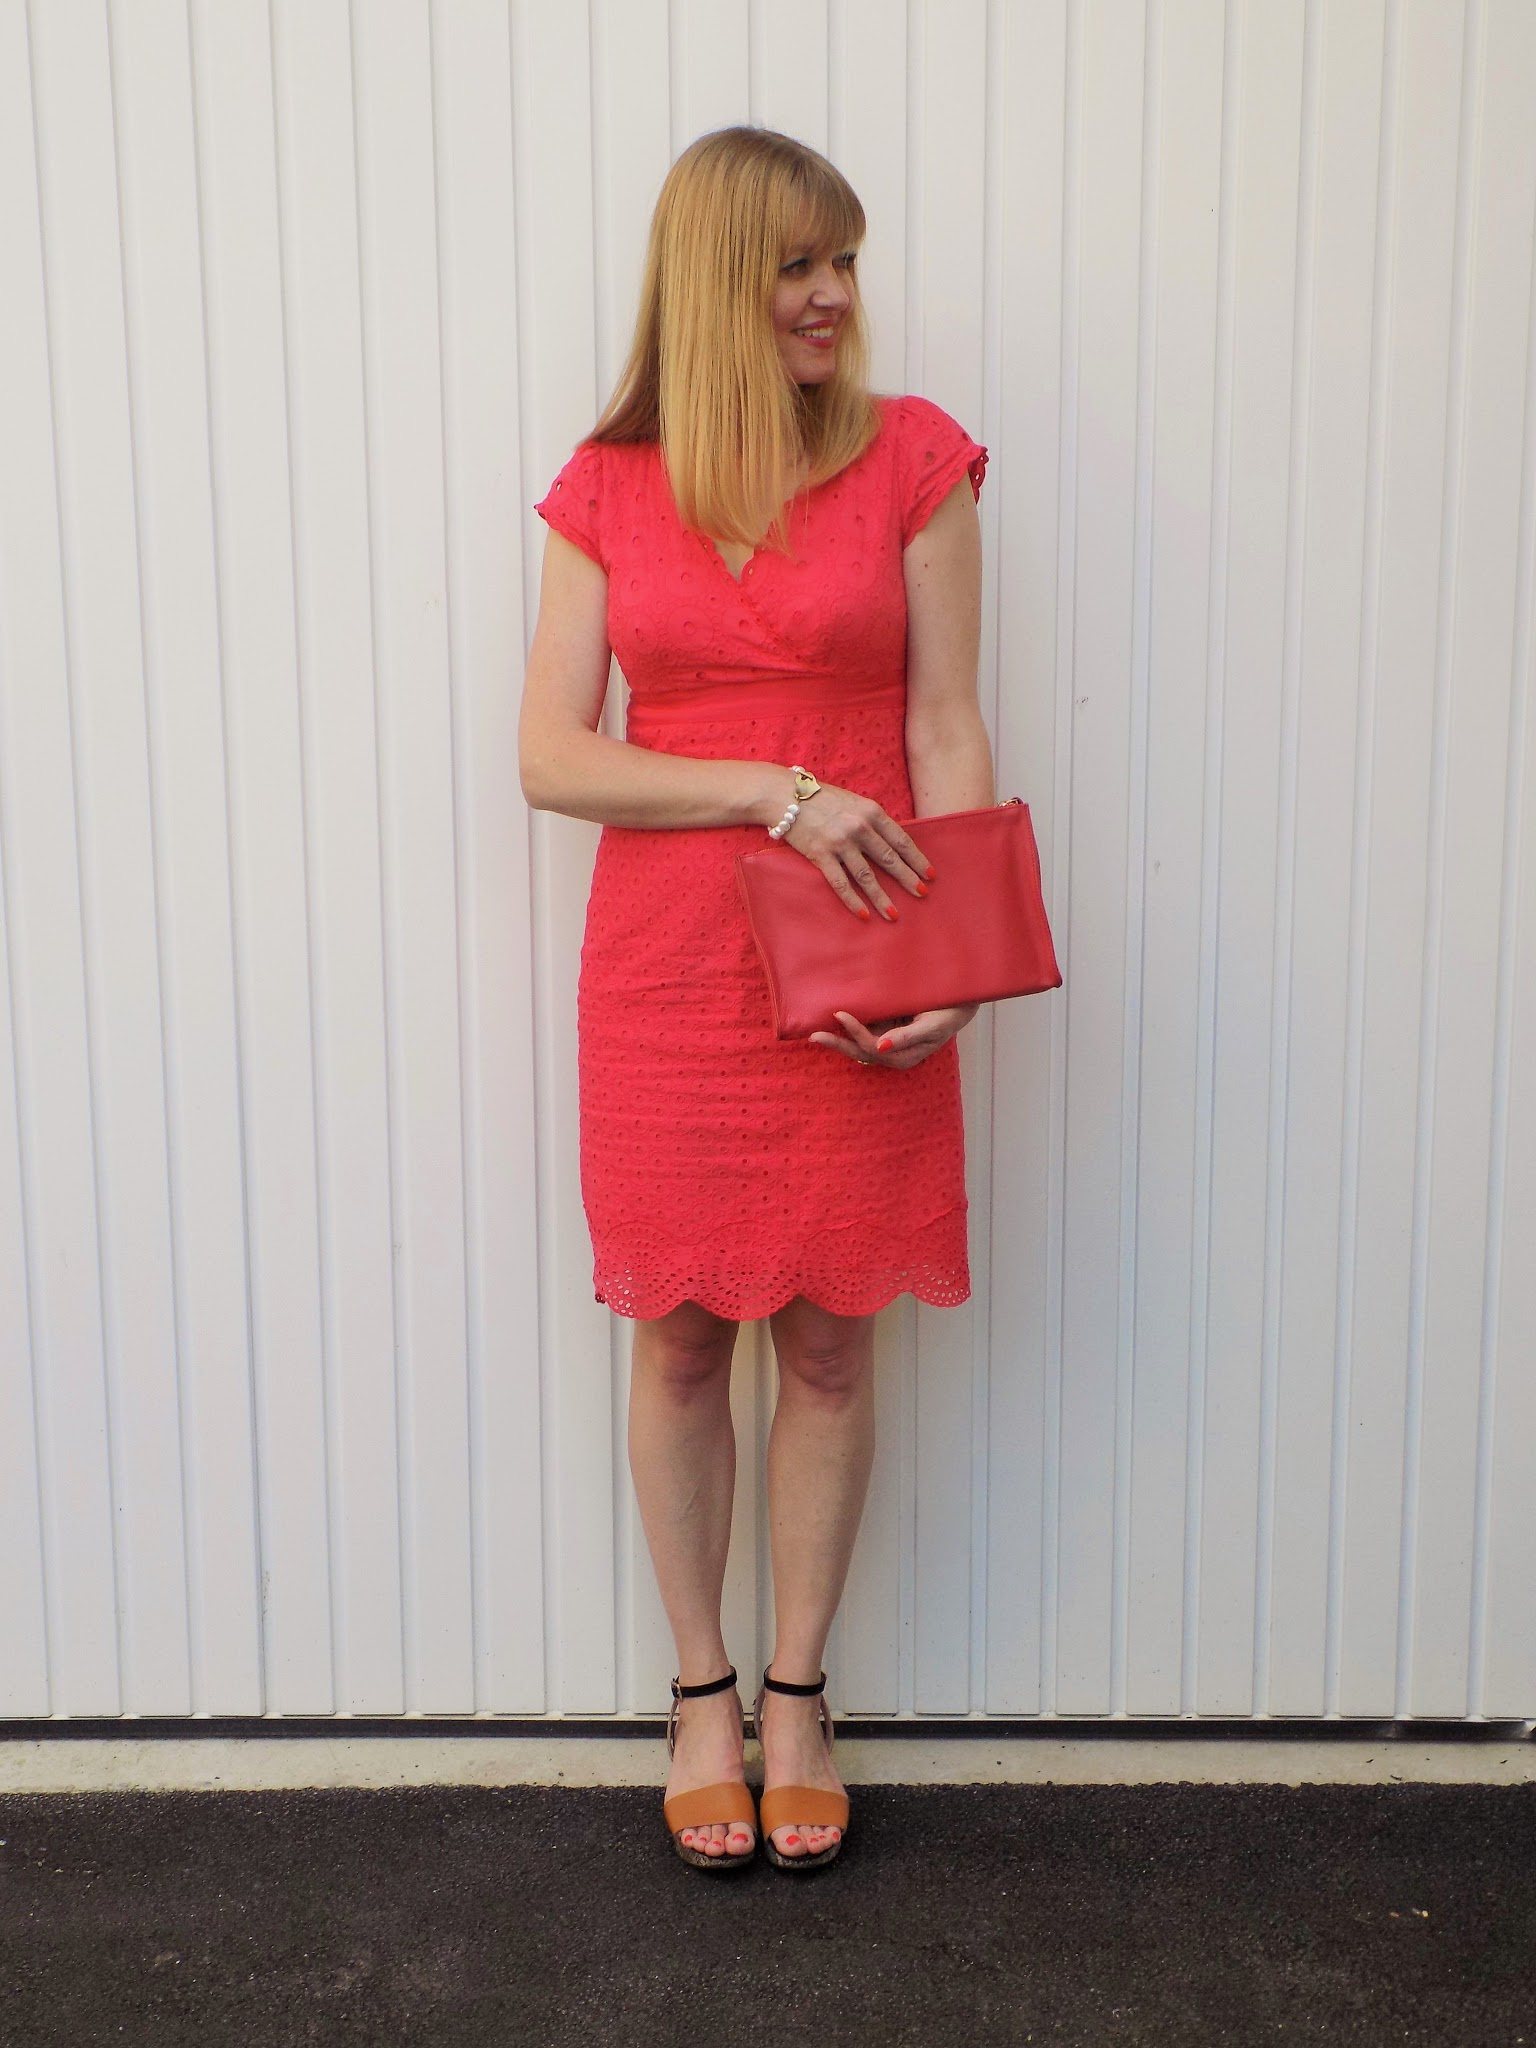 Red broderie anglasie dress with scalloped hem and sandals